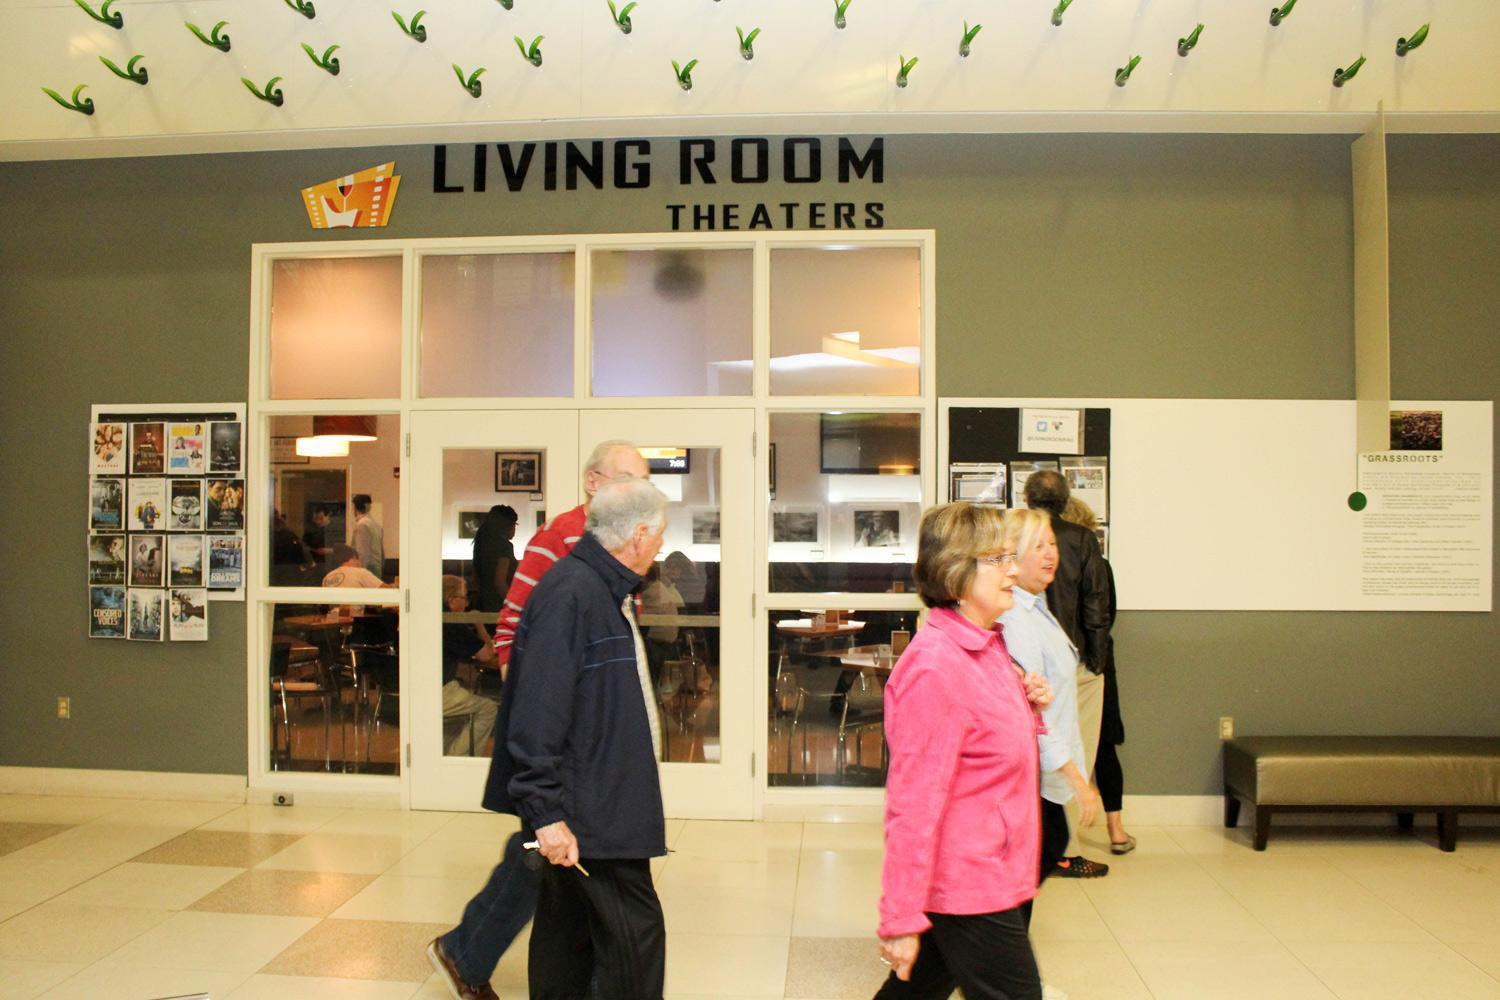 Older Theatergoers Arriving To Watch A Film At FAU Living Room Theaters Photo By Patrick